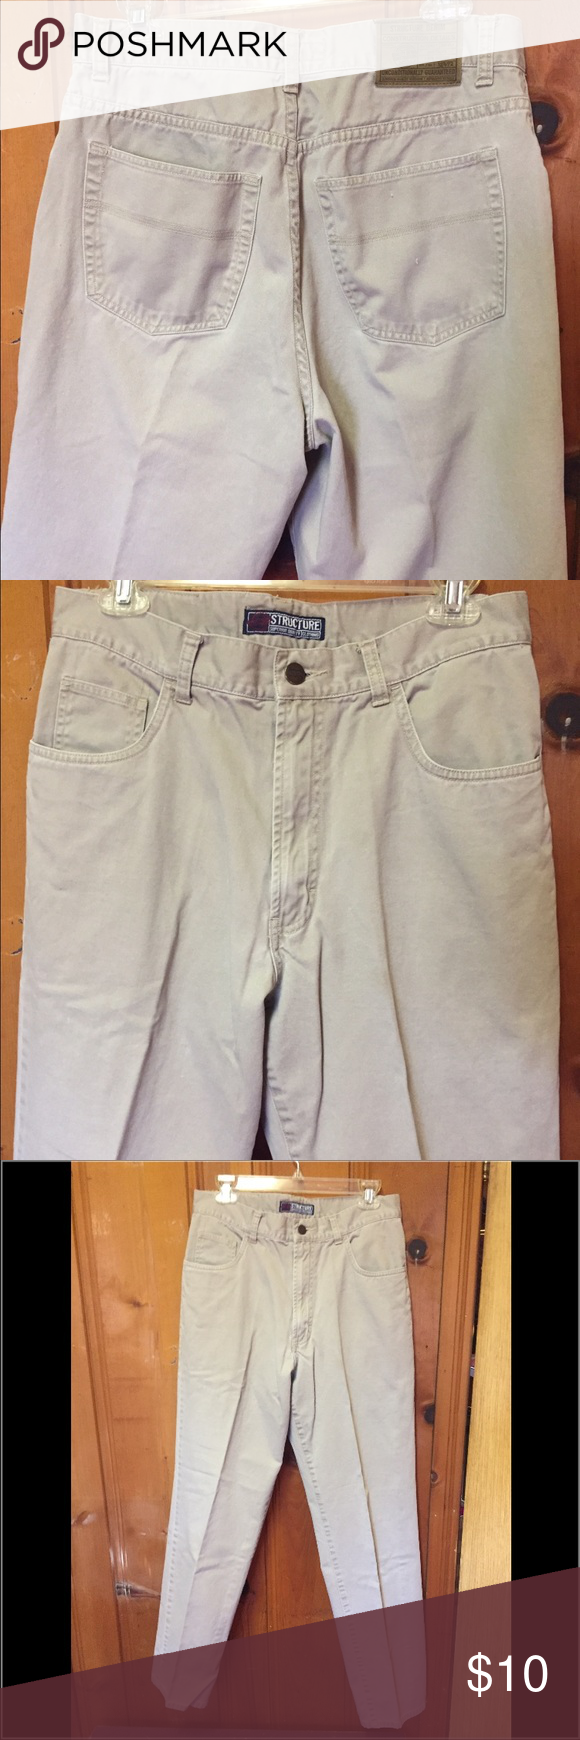 """Men's Structure Jeans Men's Structure Jeans in light gray. W 32 L 32 and made of cotton. These are made strong and to lady a long time. """"Superior Quality Clothing"""". Can be worn as casual or for work in trades or shop. Last picture shows a tiny flaw on the left leg of pant. Not really noticeable. Bundle two or more items for 15% off discount! structure Jeans Bootcut"""